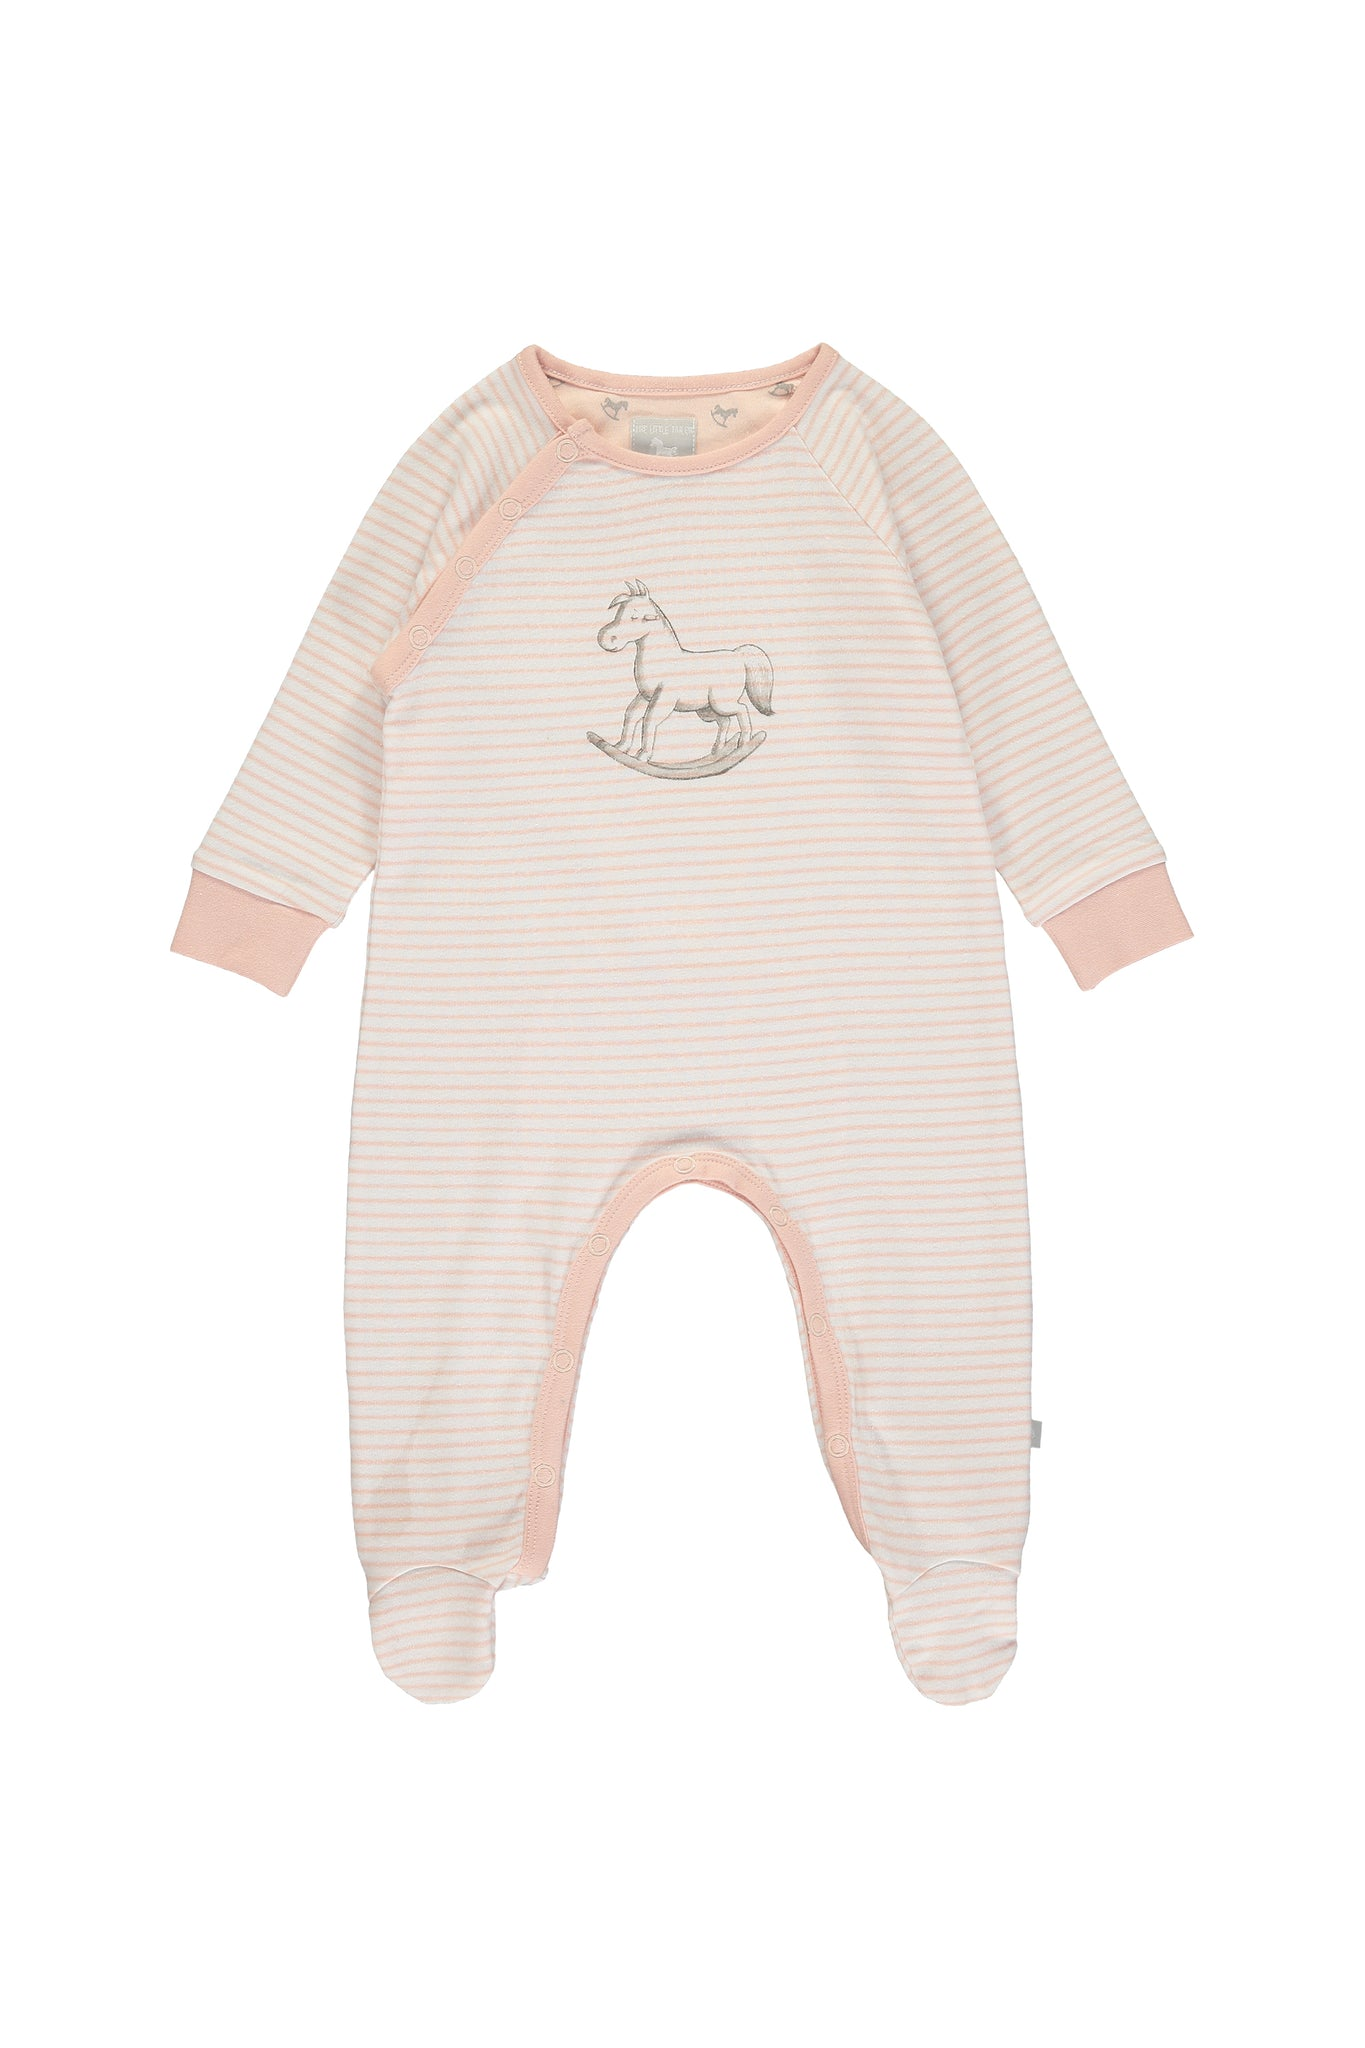 Super Soft Jersey Stripe Chest Print Sleepsuit - pink